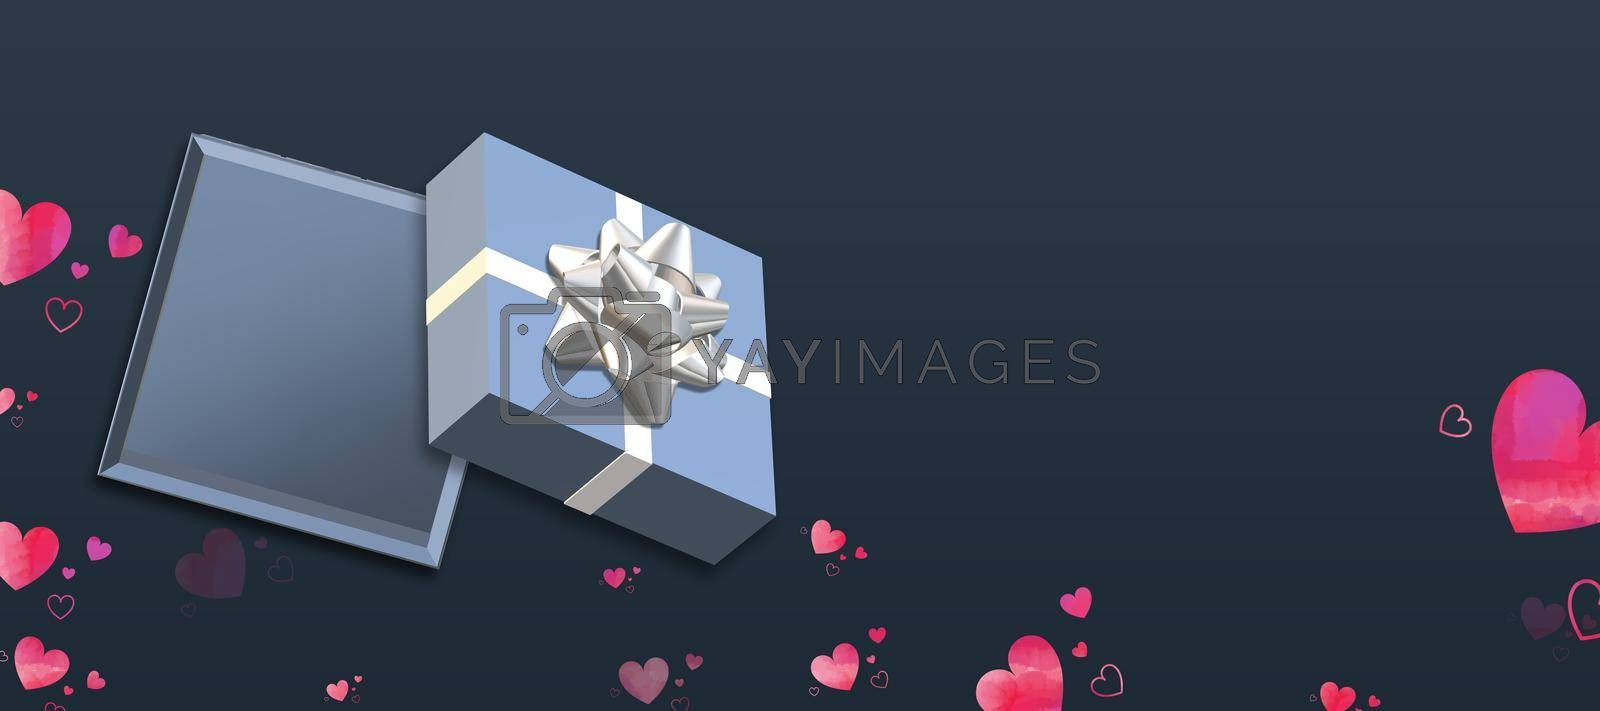 Valentine's Day love design. Horizontal header. Blue gift box, hearts confetti on blue background. Love concept, Valentines design. Place for text, mock up 3D illustration